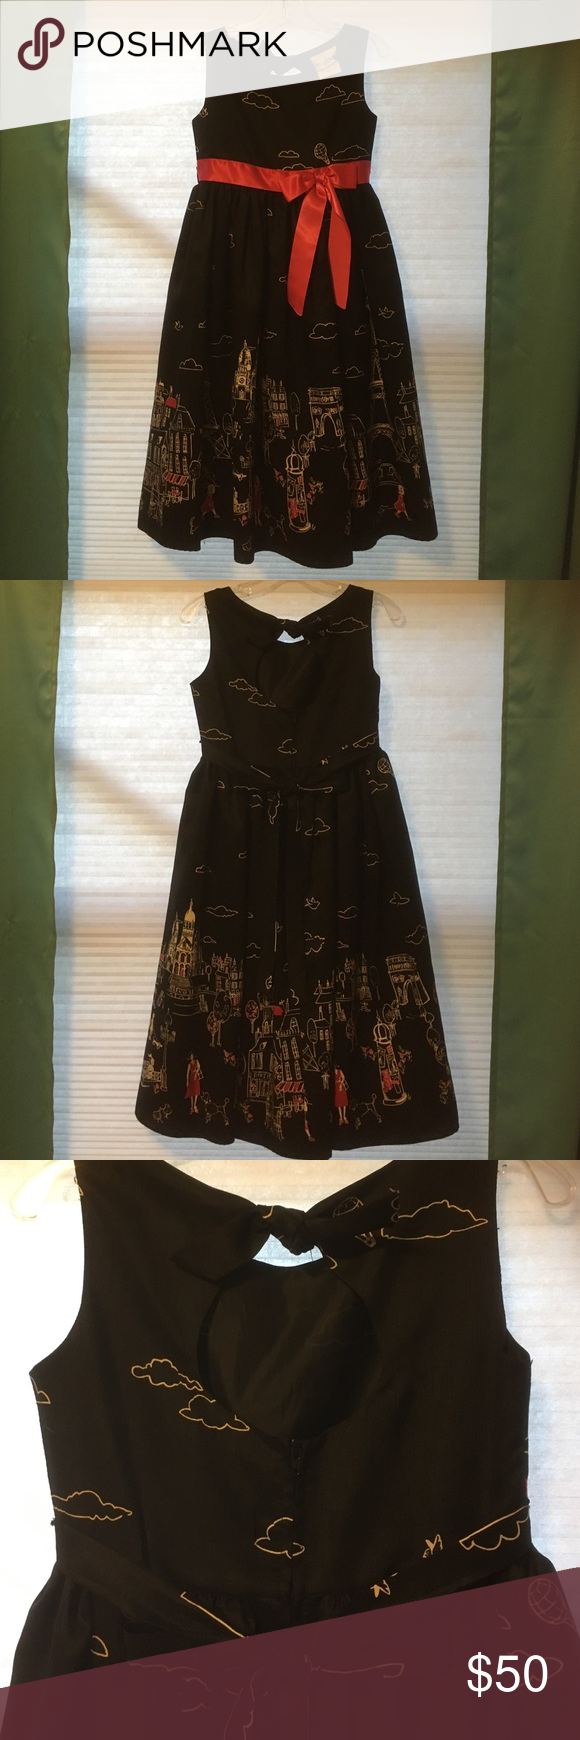 Rare Editions Ooo la la Girls Party Dress